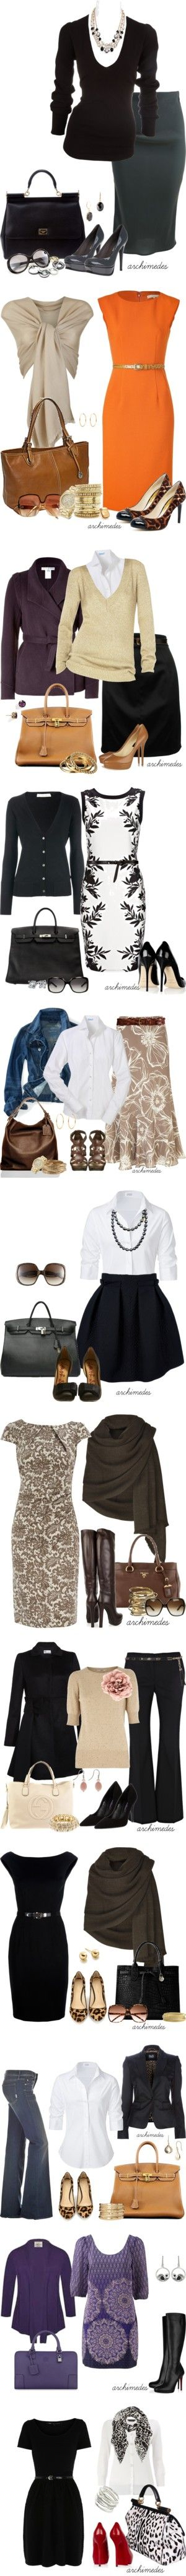 """Office Attire"" by archimedes16 on Polyvore- makes me want to work in an office LOL"